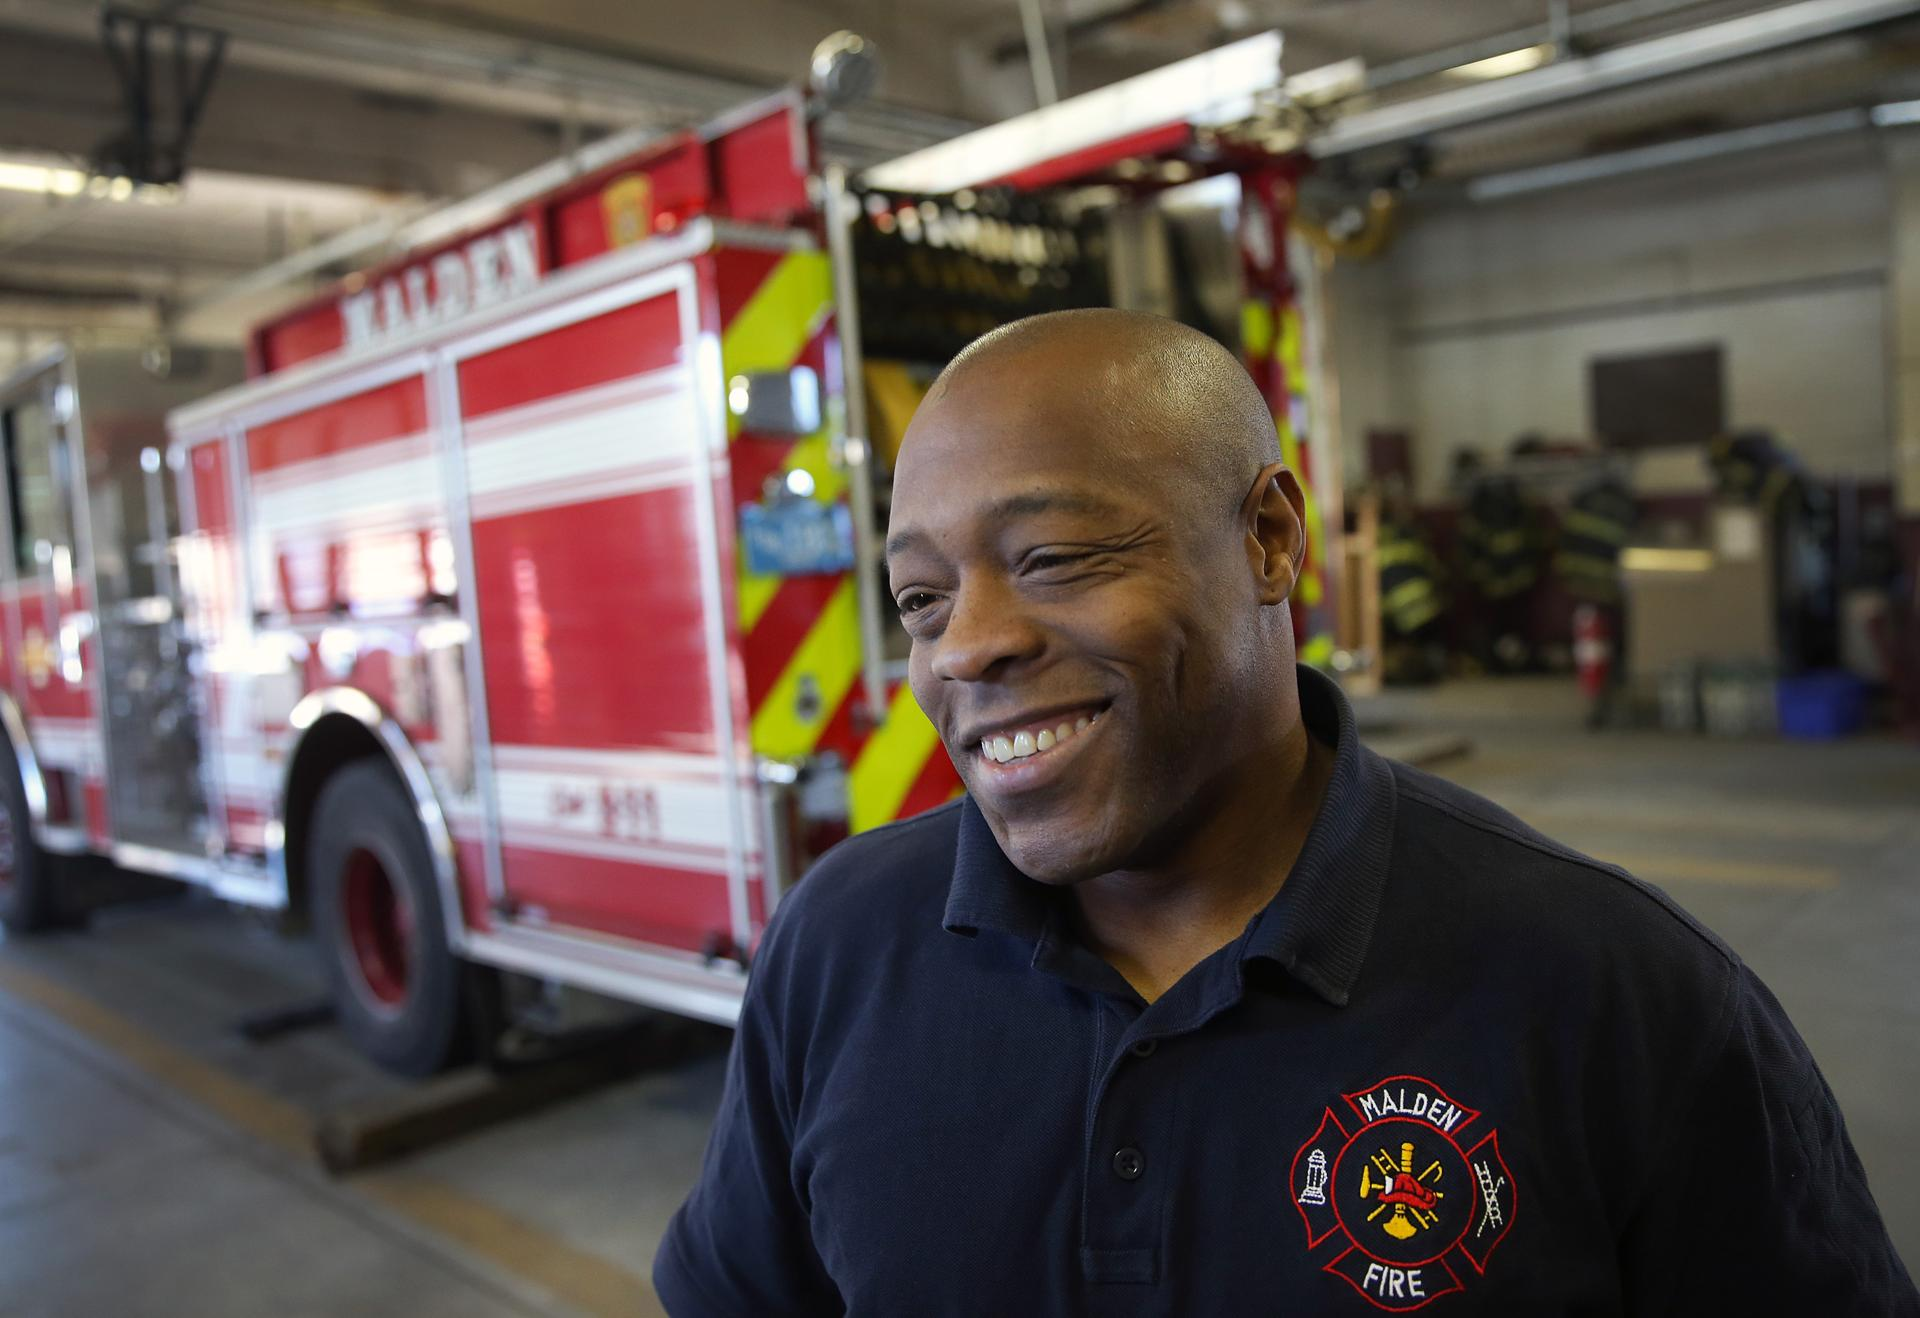 saugus firefighters rescued while battling blaze the boston globe malden firefighter gregory jean was smiling after he was safely back at his home fire station